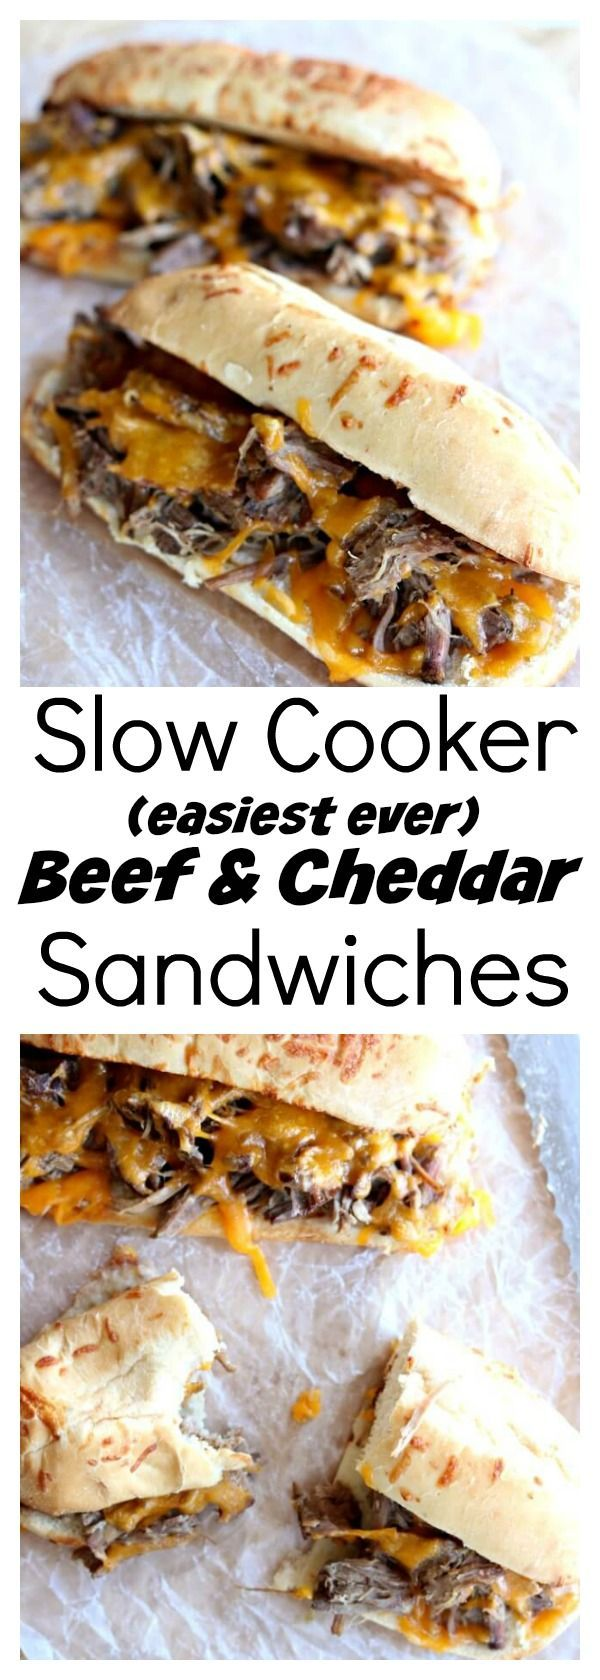 Slow Cooker Beef and Cheddar Sandwiches–the easiest recipe to make ever. With only 4 ingredients total (beef, onion soup mix, cheddar and sandwich buns) you may be thinking that this recipe is just too easy to taste good. Well, you're wrong 🙂 The flavor is amazing and your family will be asking for seconds.